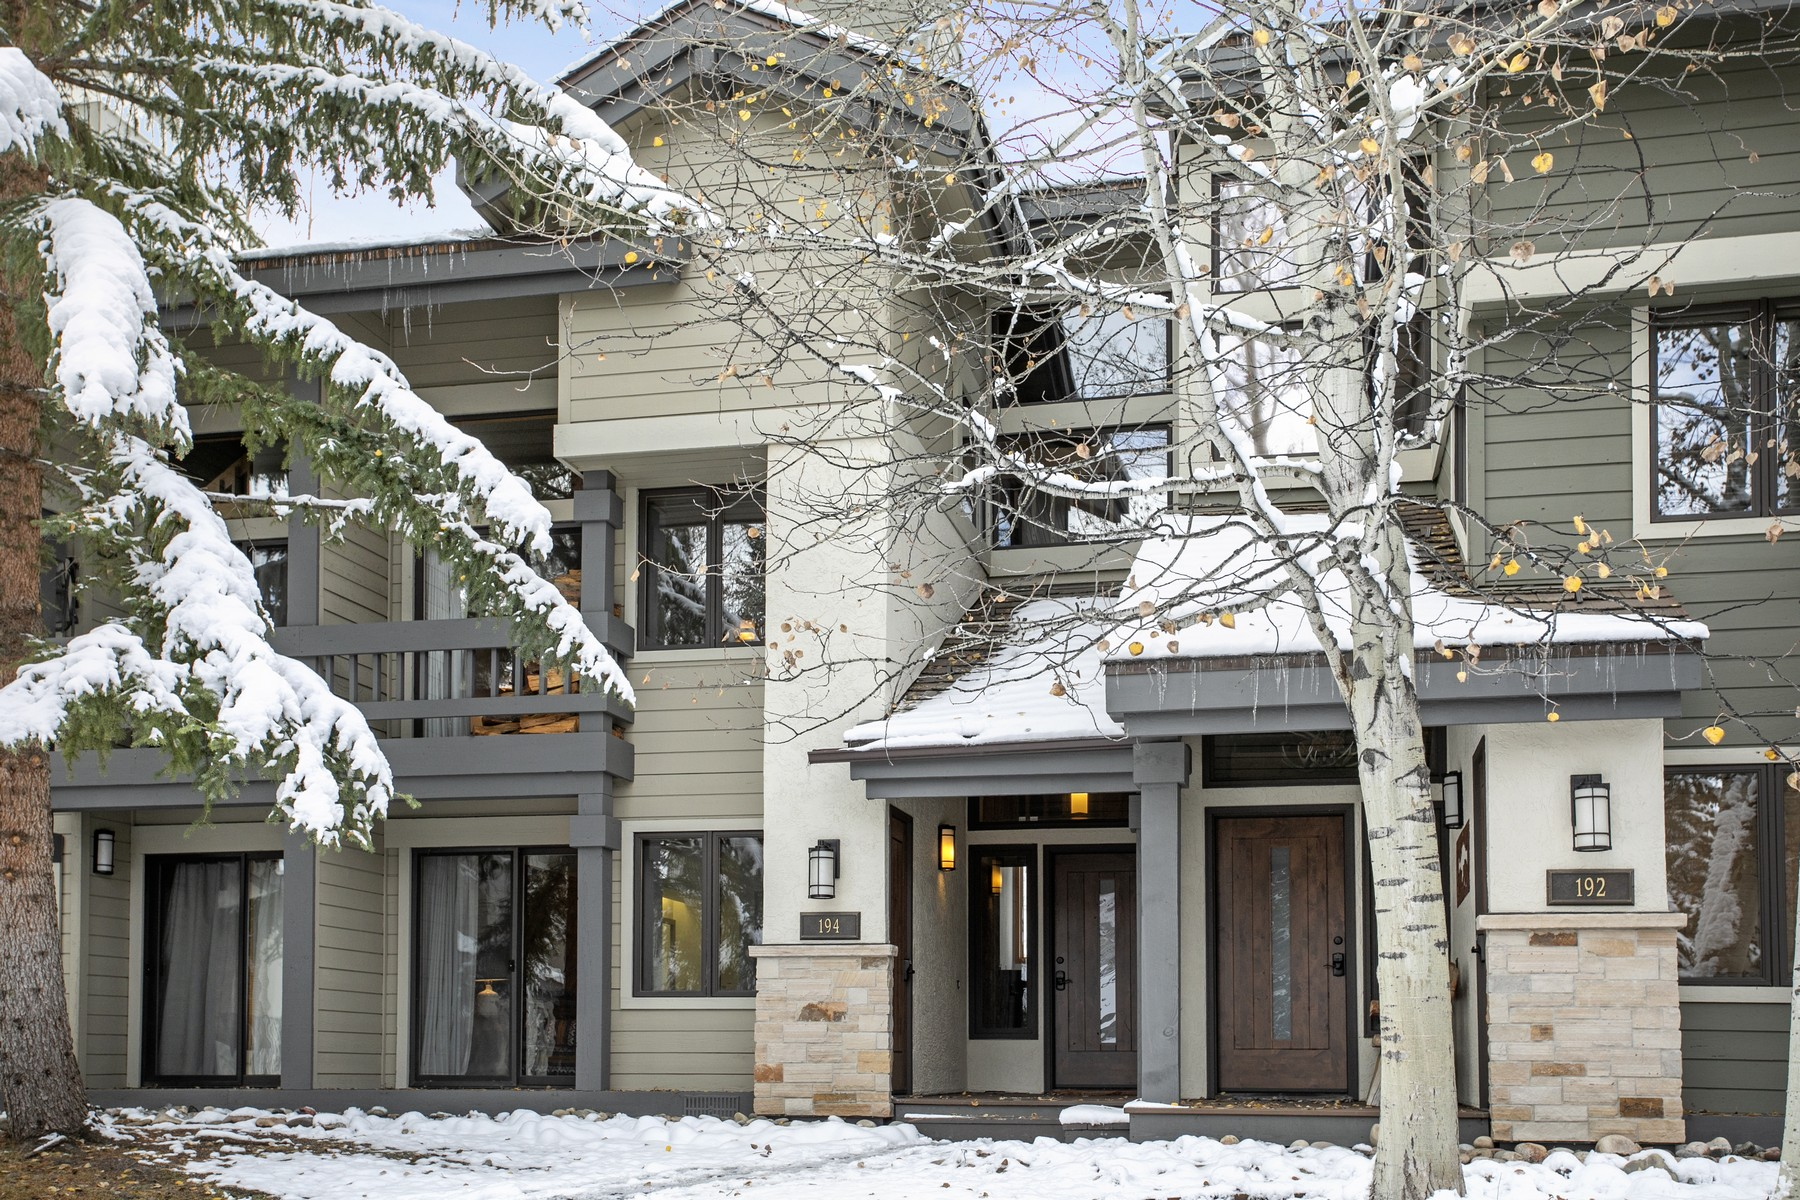 Property for Active at Ridgepoint #194 185 Willis Place #194 Beaver Creek, Colorado 81620 United States